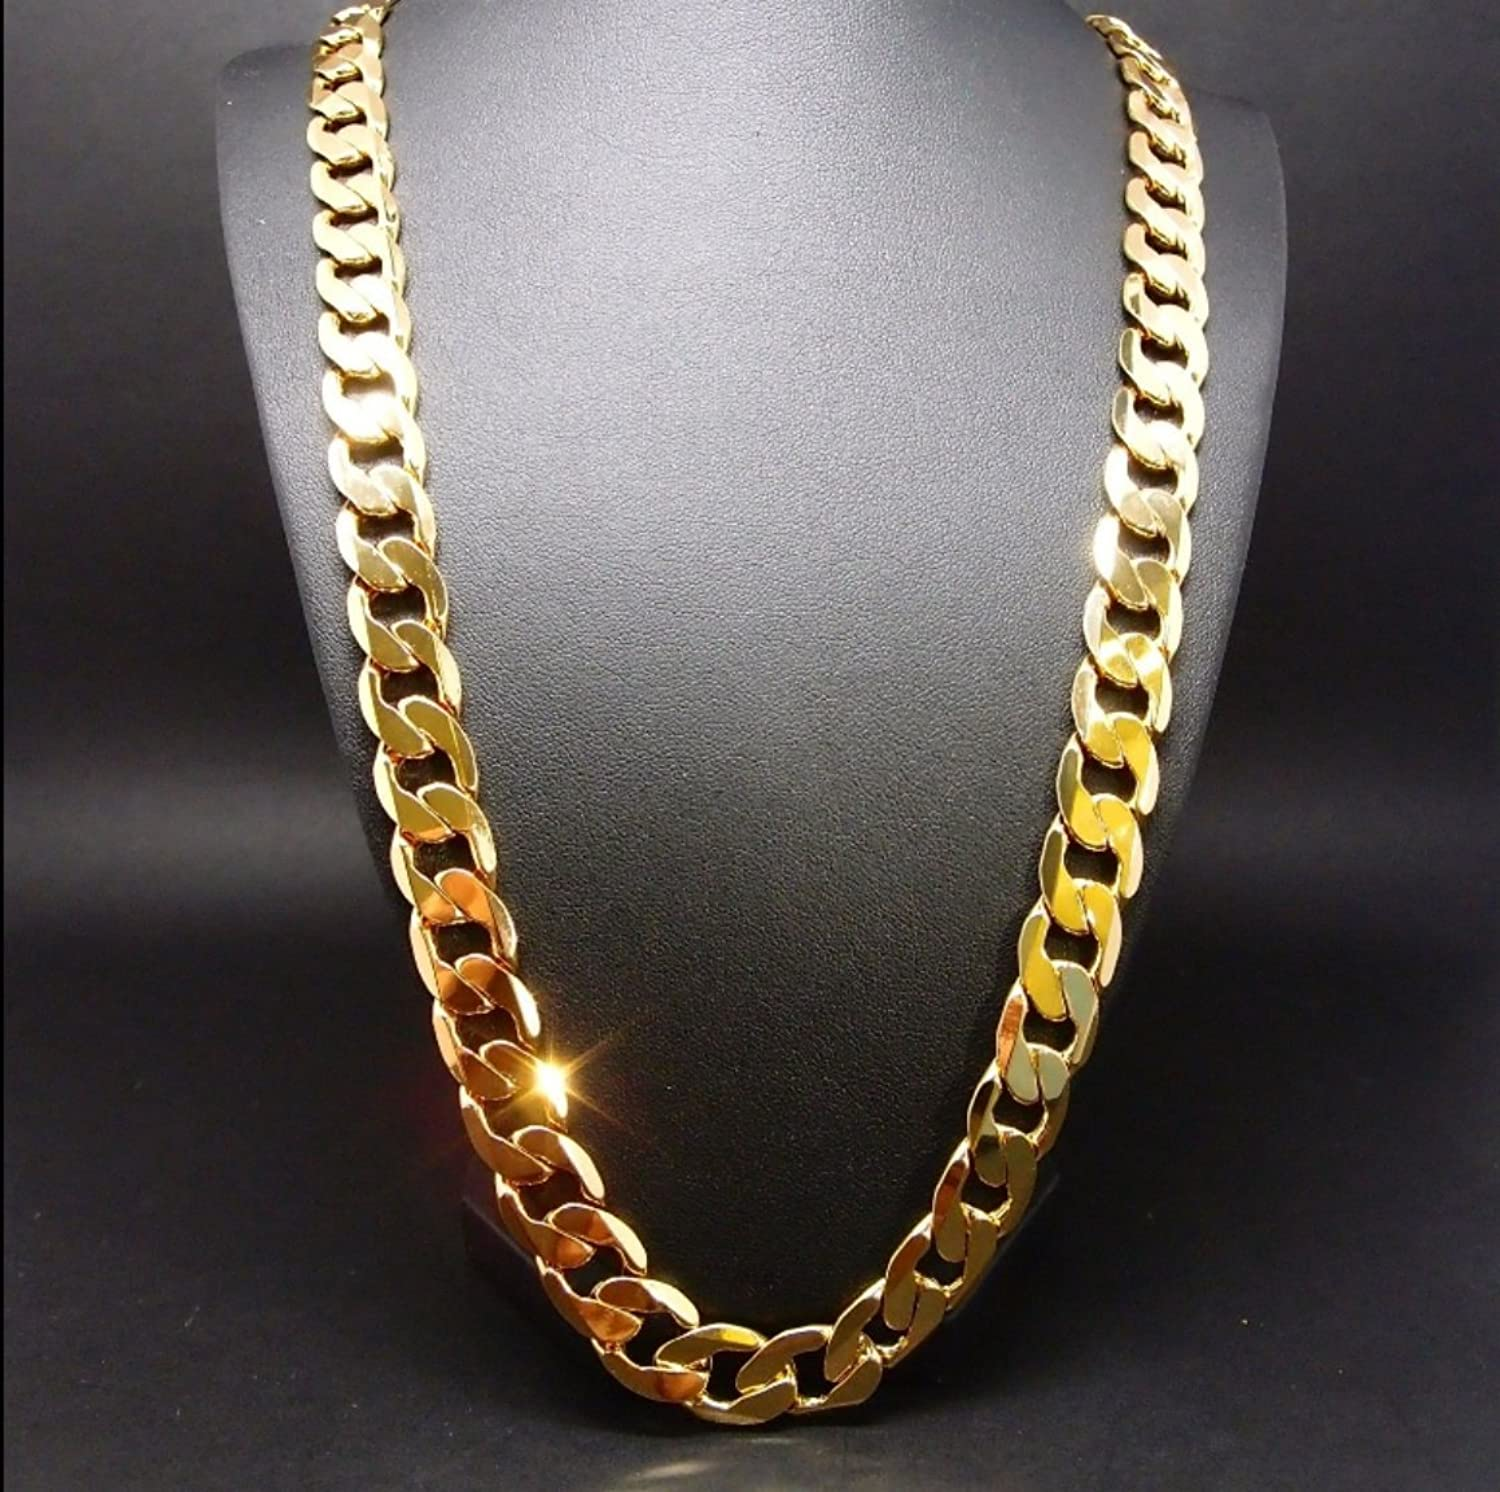 Gold chain necklace 9.1MM 24K Diamond cut Smooth Cuban Link with a ...